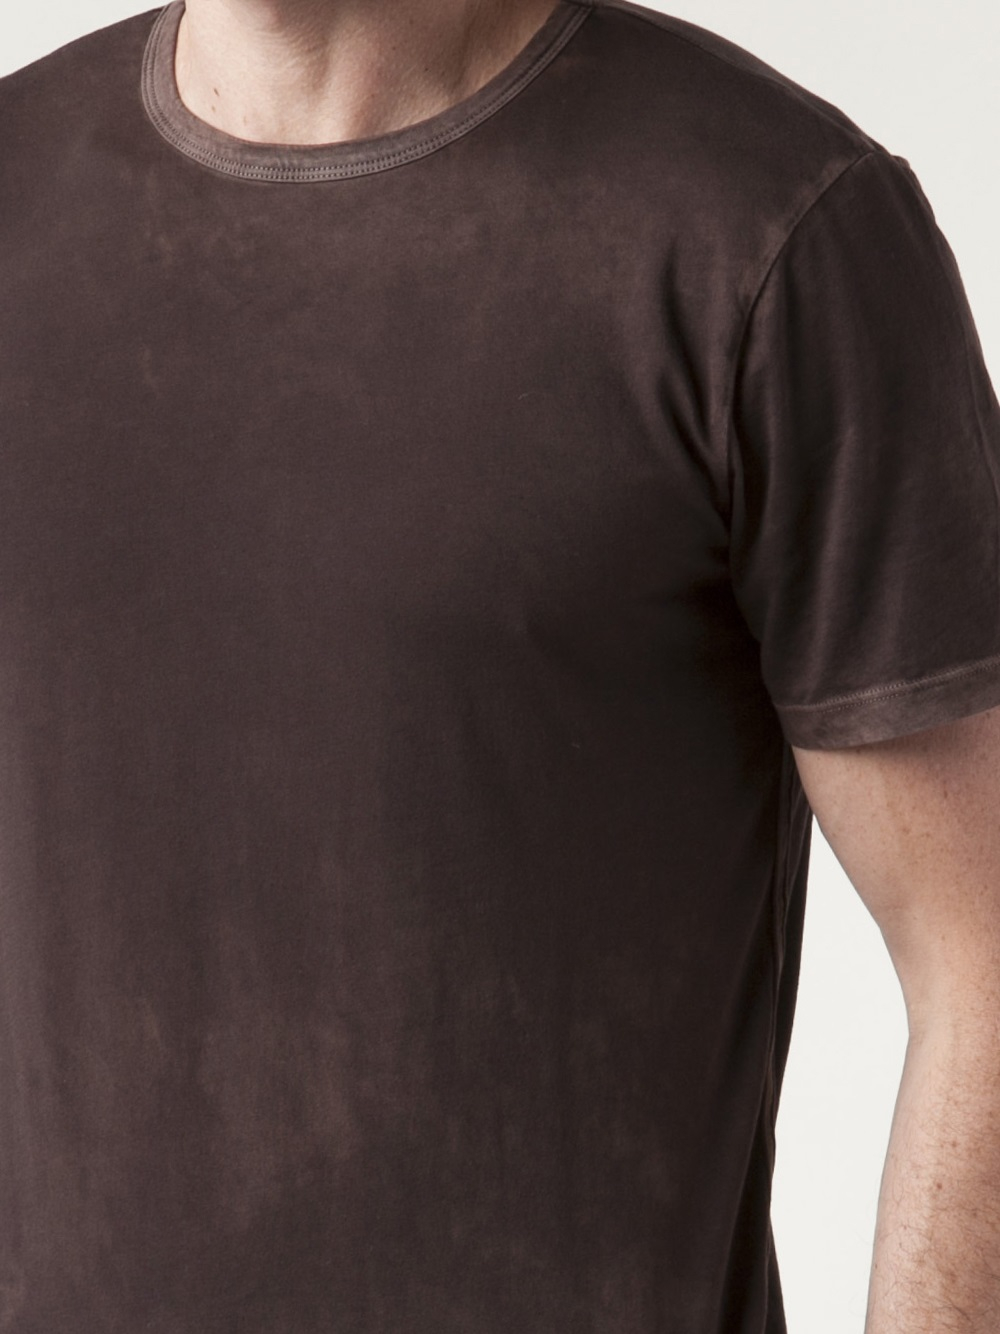 Cotton citizen faded tshirt in black for men lyst for Faded color t shirts